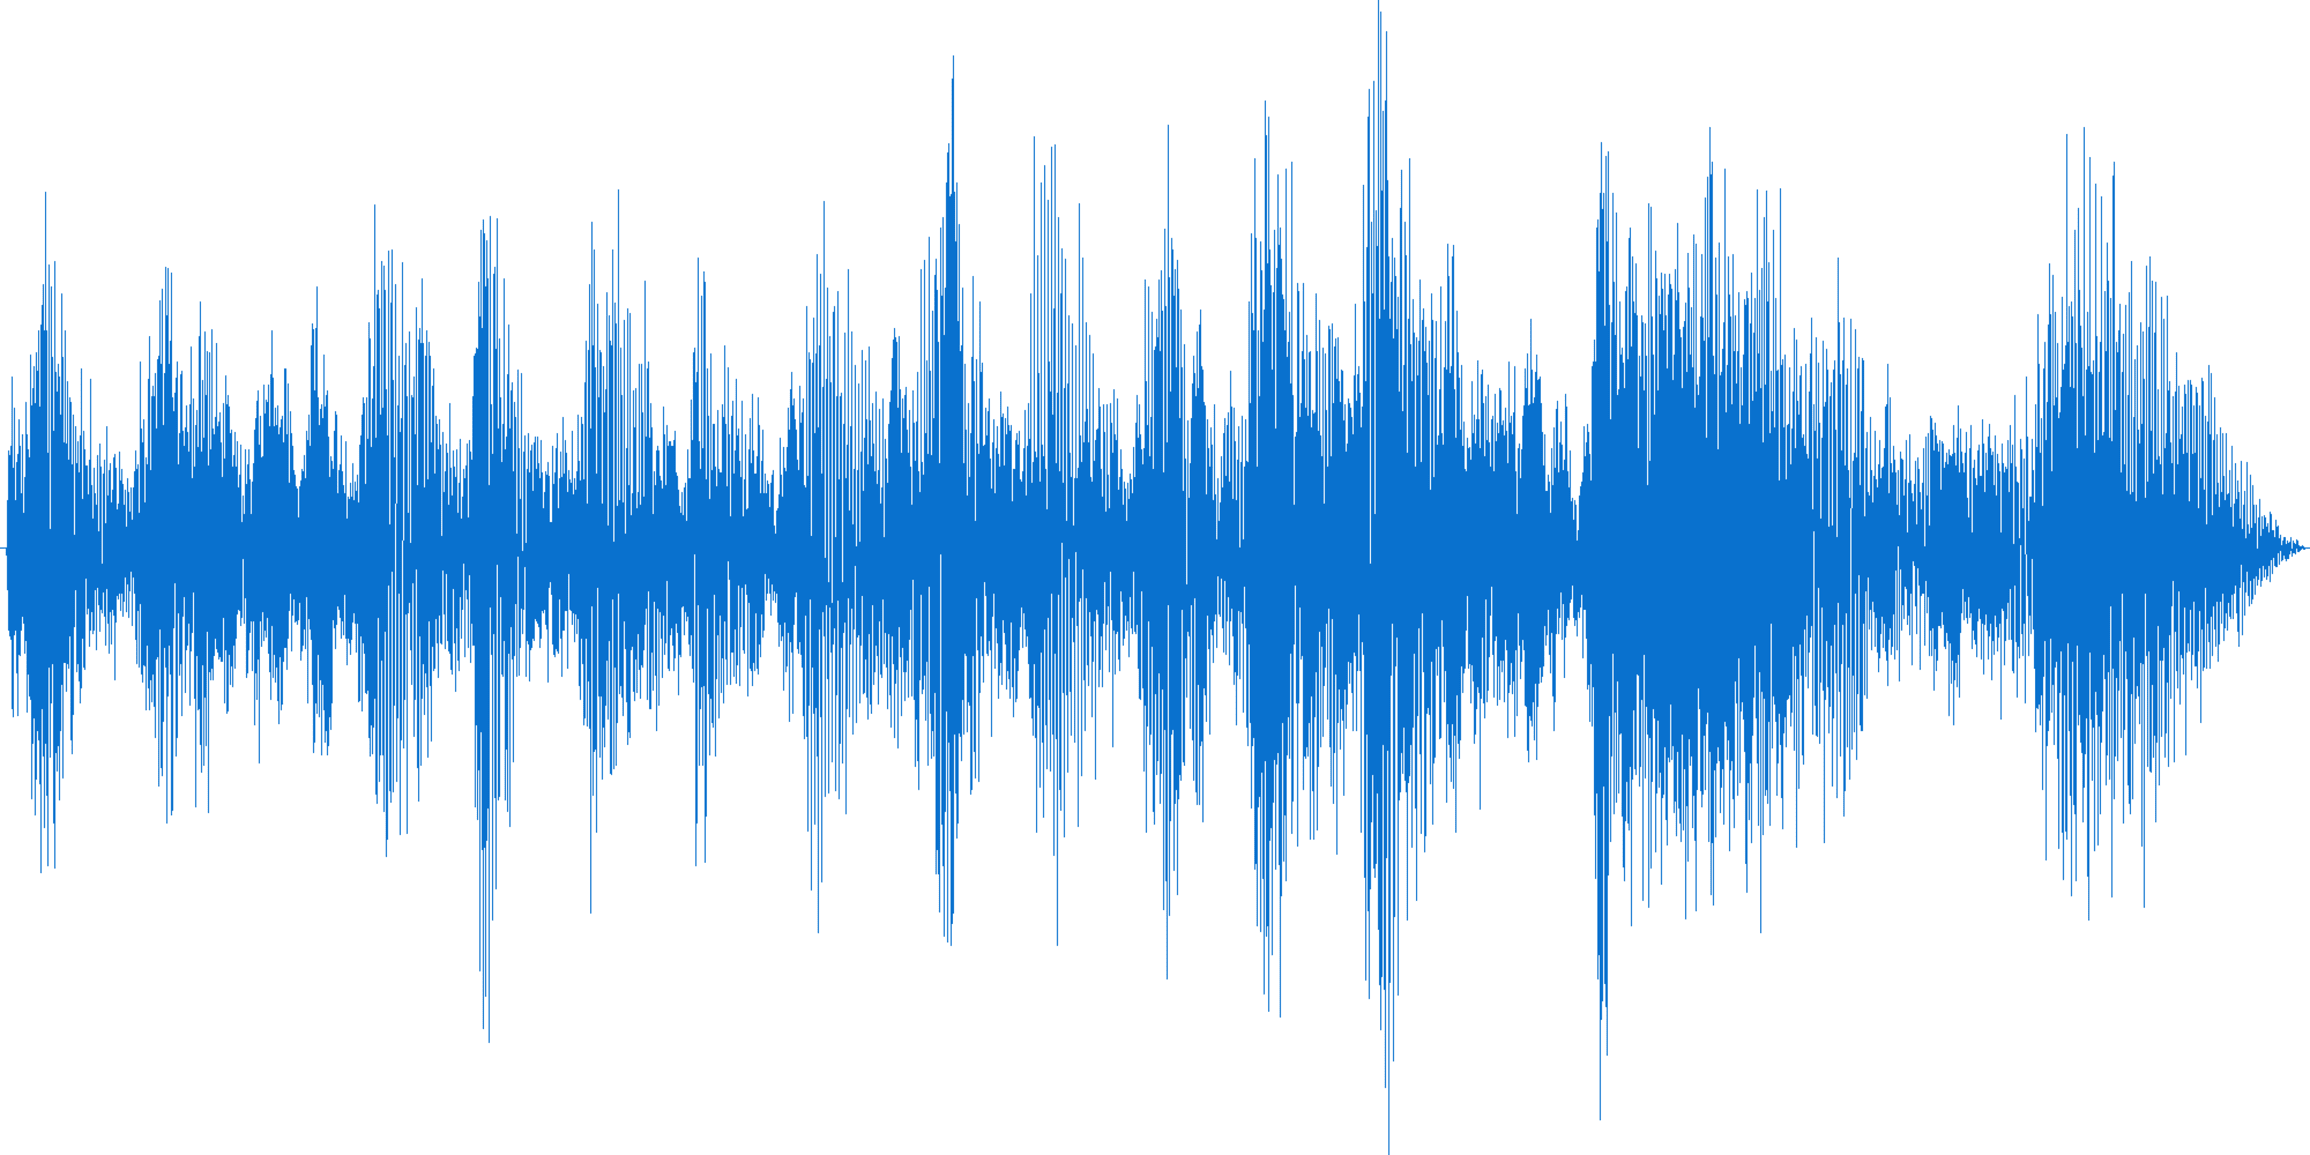 How to Generate Waveform Images From Audio Files